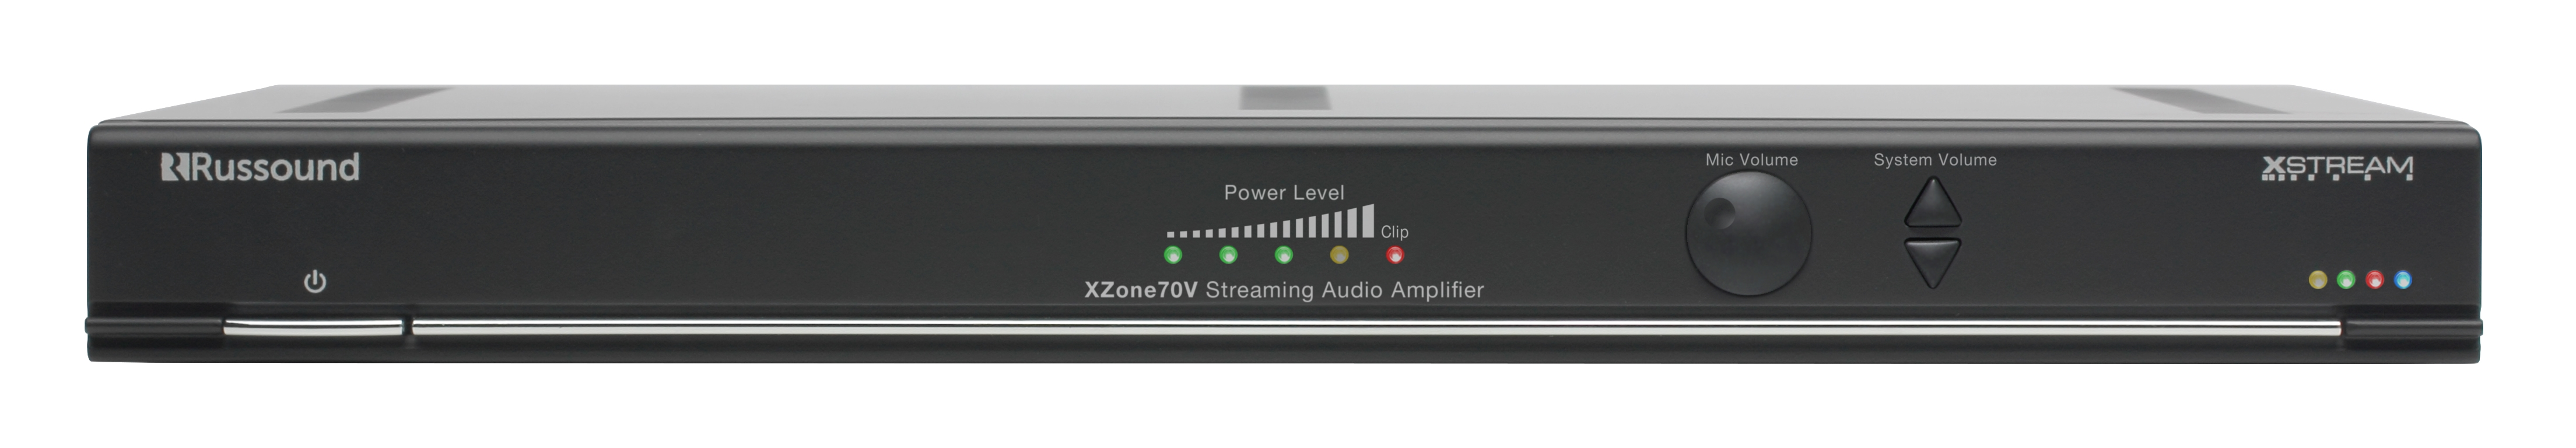 Russound XZone 70V